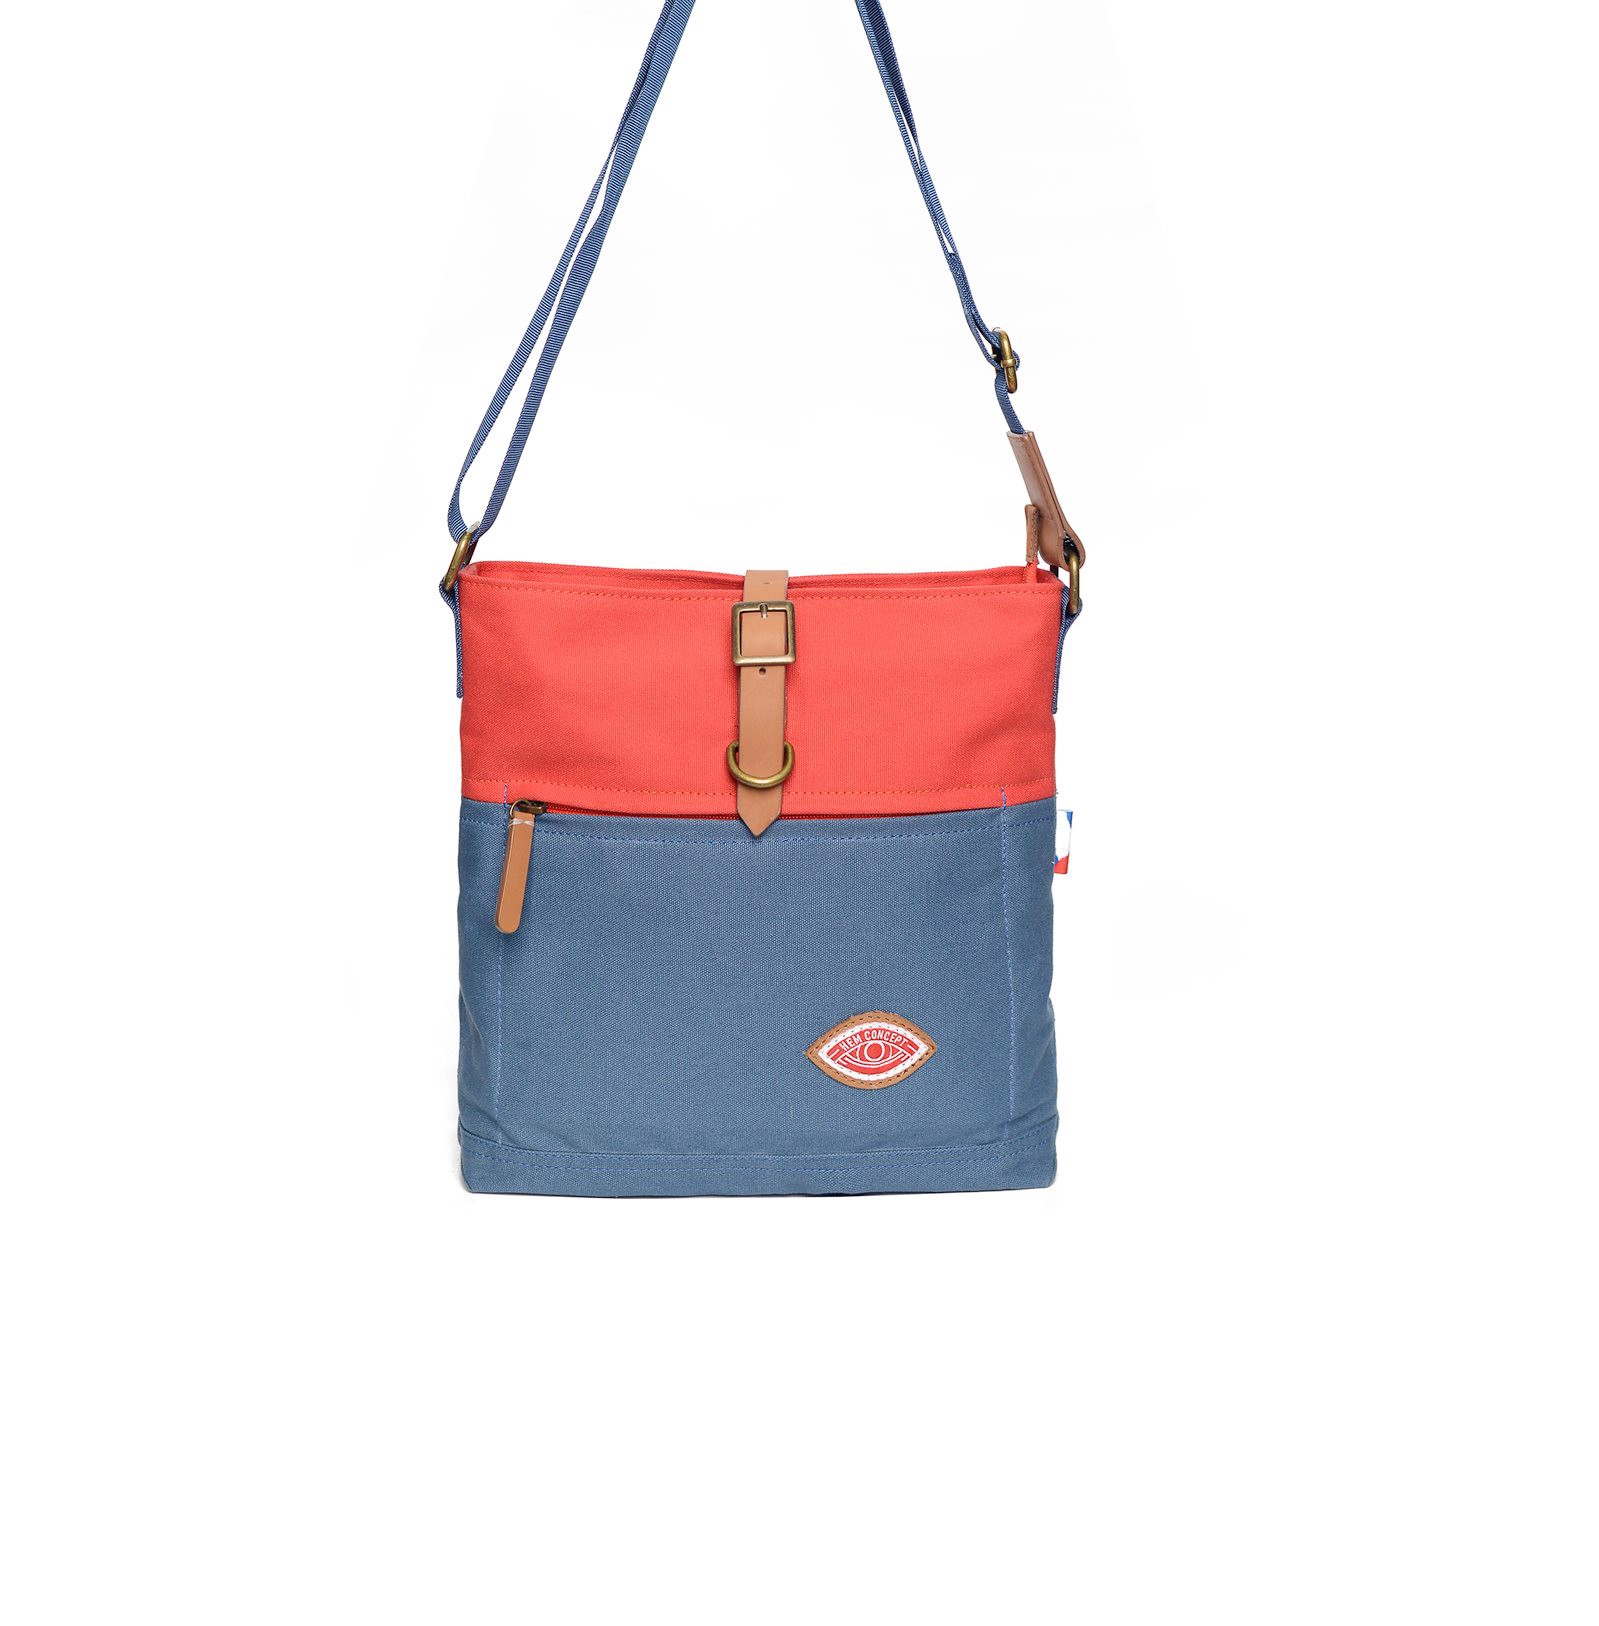 ROADY - AIRY BLUE/RED